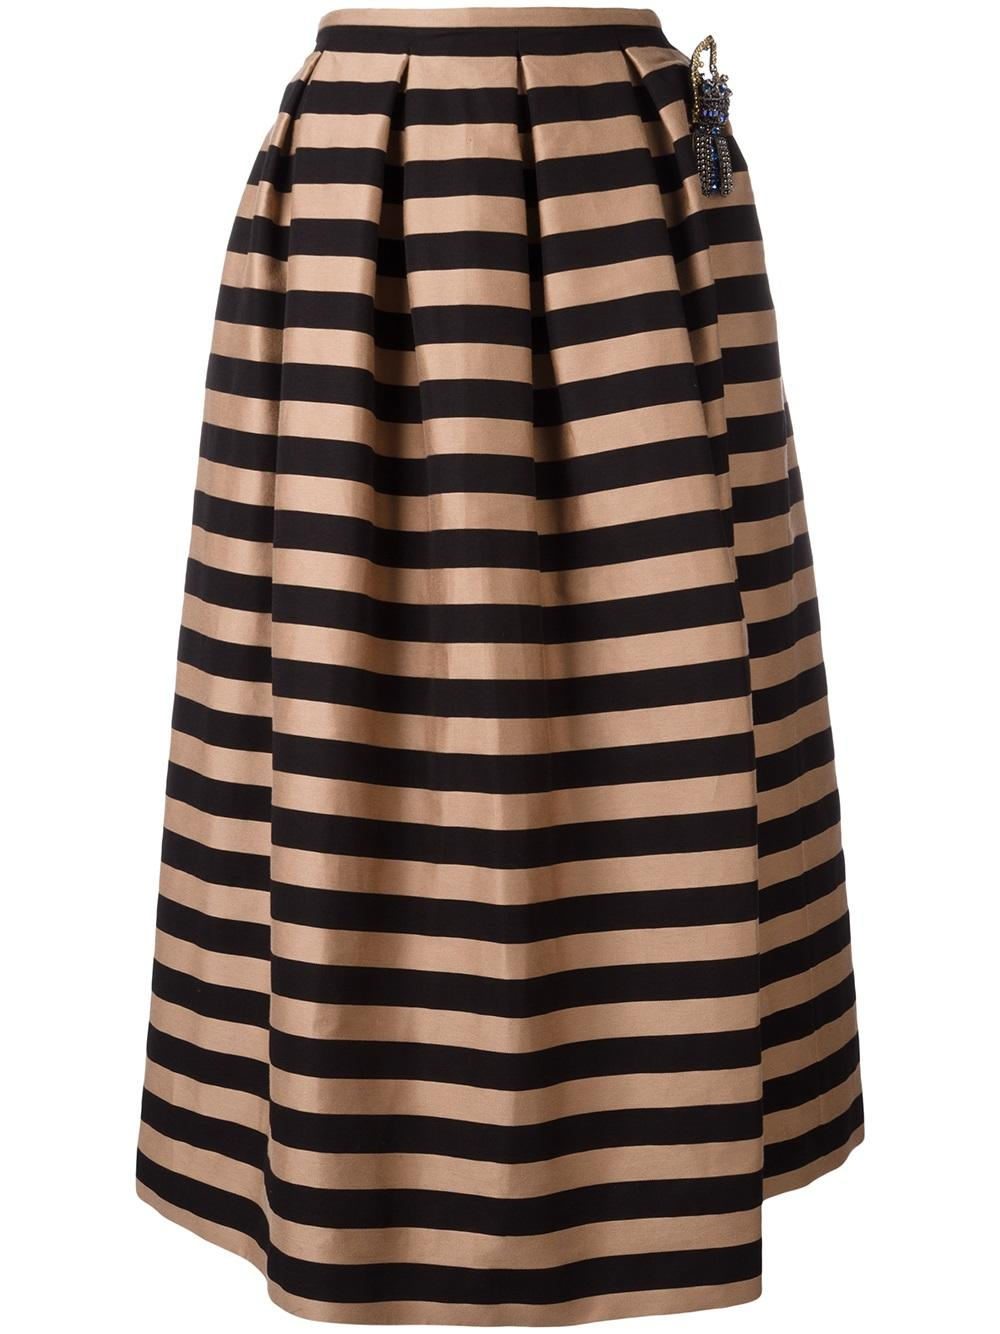 Rochas black/nude pleated skirt - Iconics Preloved Luxury